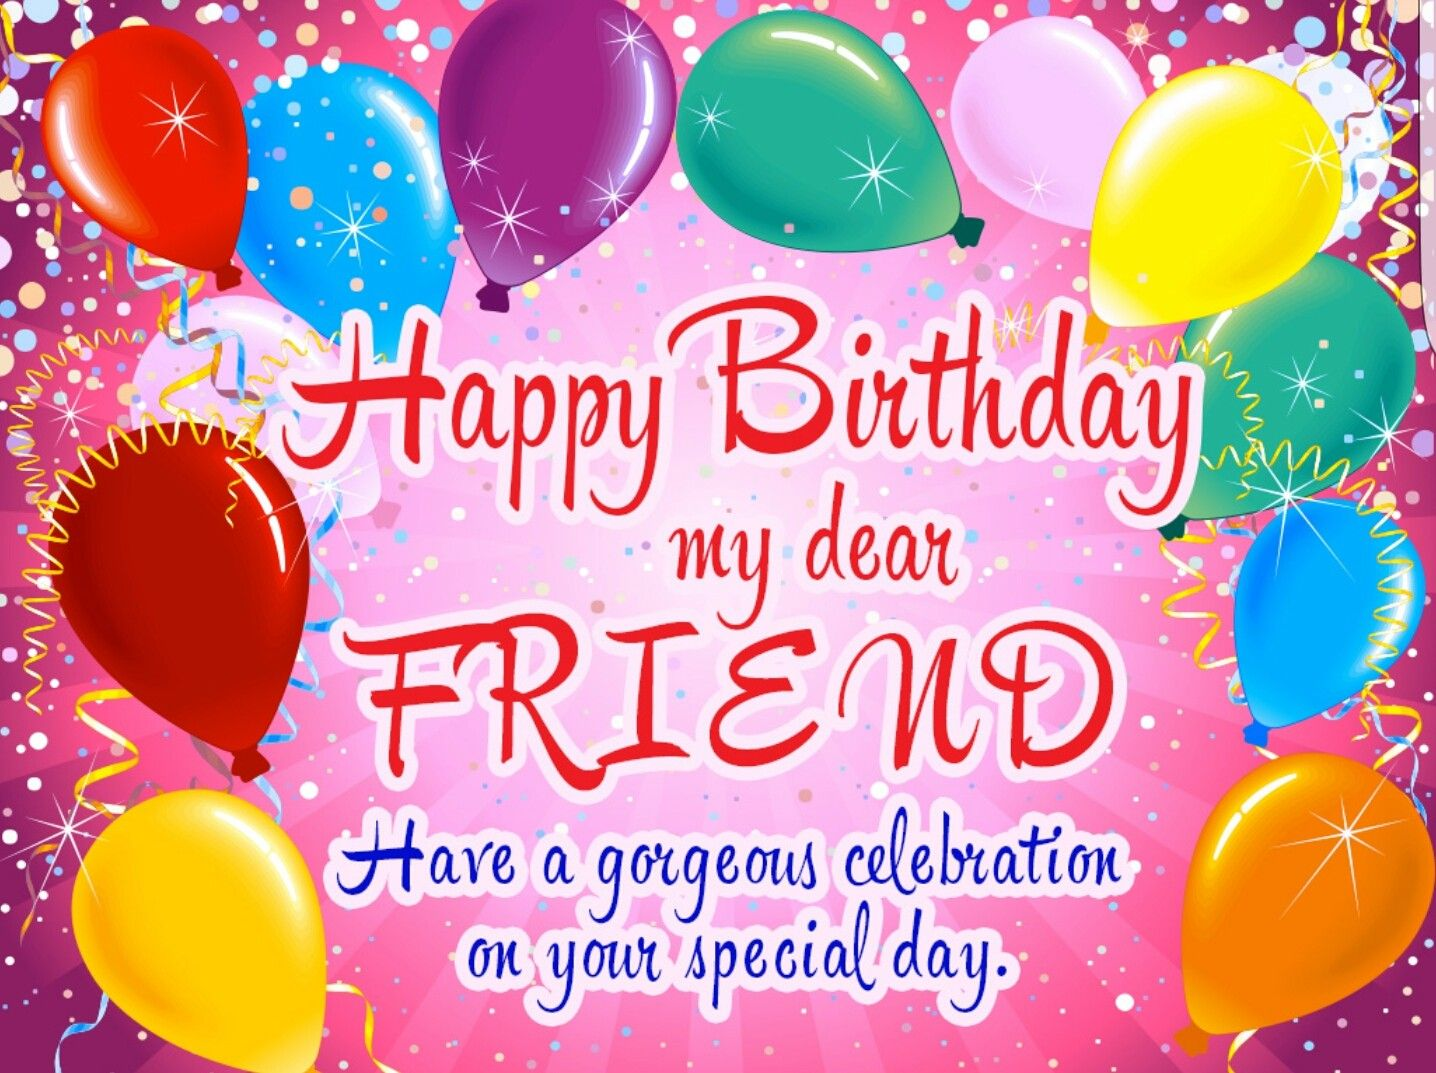 Pin by Peter Gallagher on Happy Birthday Ideas Happy